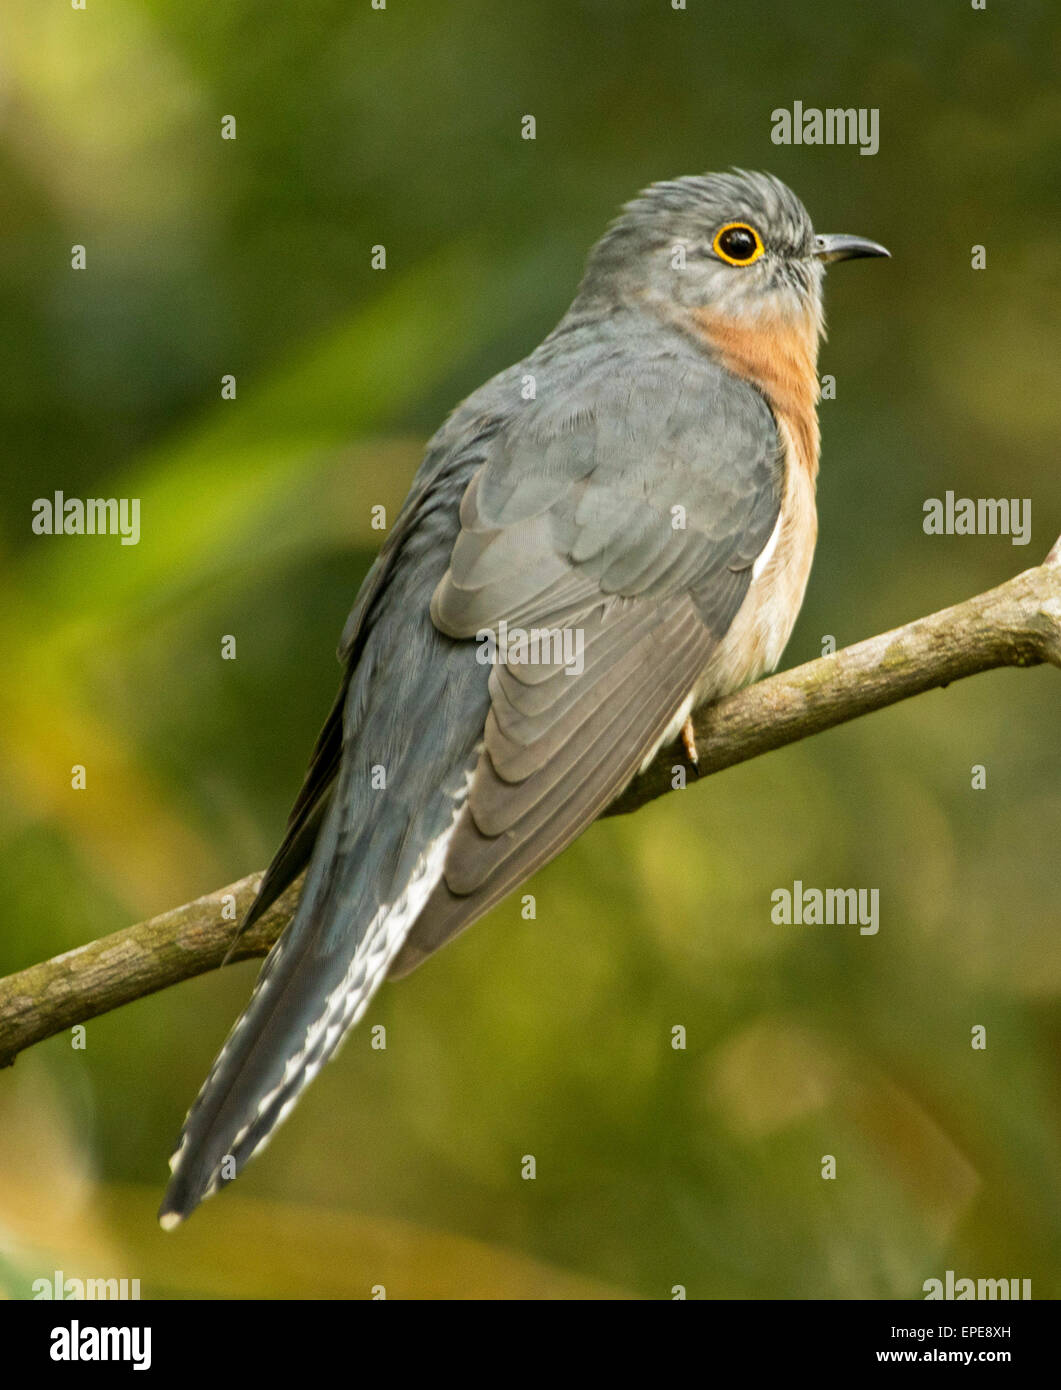 Australian fan tailed cuckoo, Cacomantis flabelliformis, in the wild perched on small branch and against light green - Stock Image